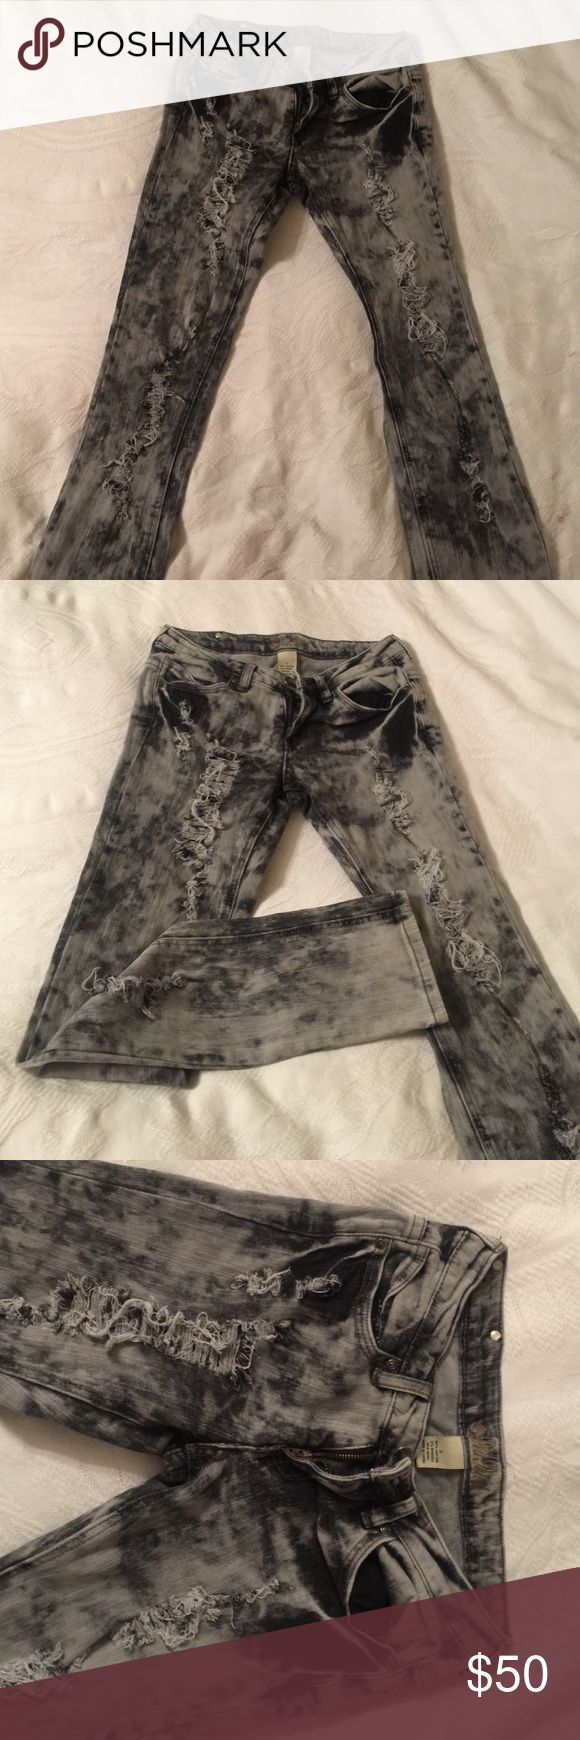 Grey ripped jeans Grey and black ripped jeans beautiful skinny jeans size 5 red rivet Jeans Skinny